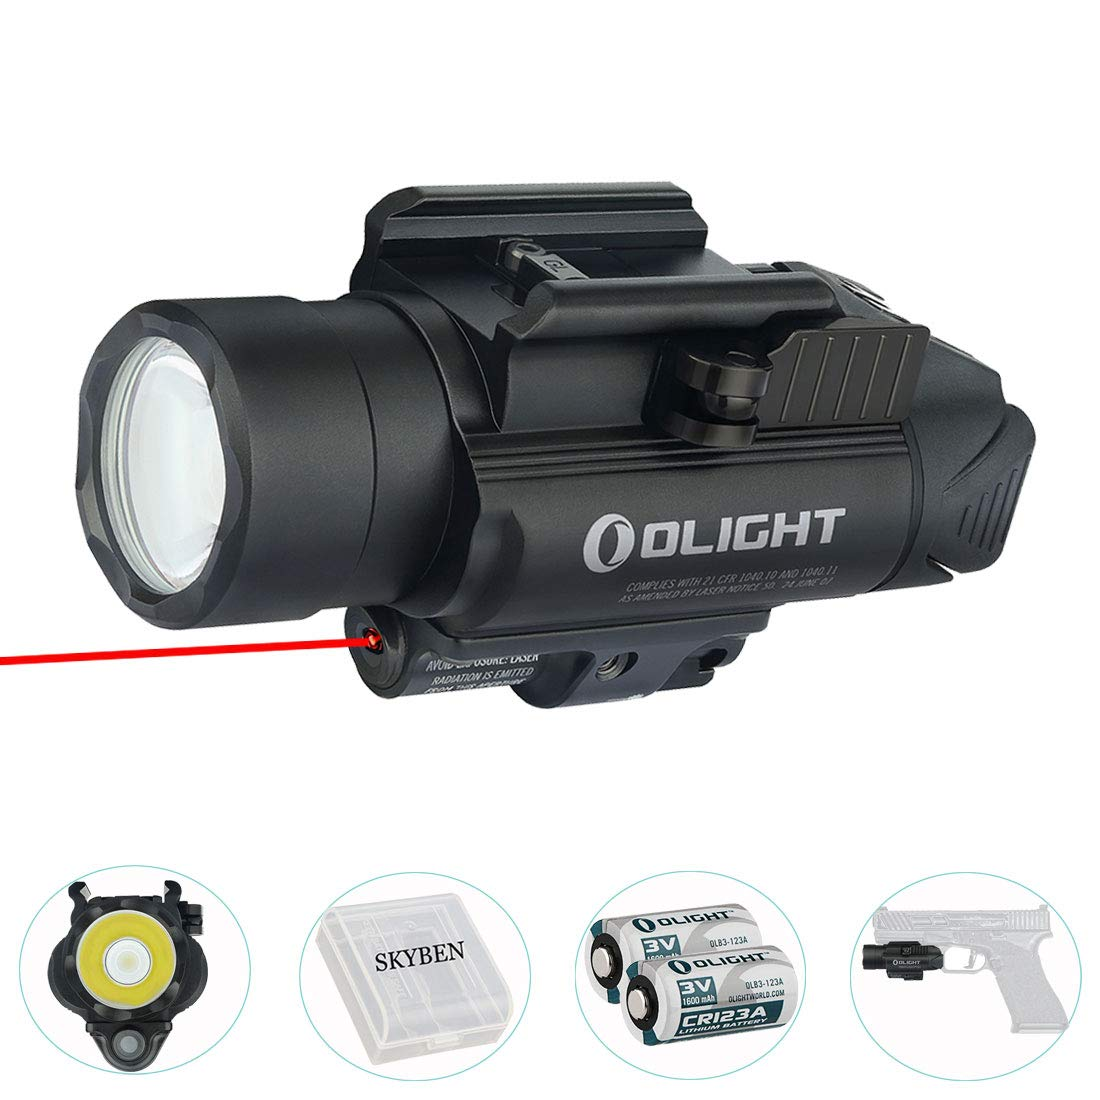 SKYBEN Olight Baldr RL 1120 Lumens Tactical Flashlight with Red Light, Compatible with 1913 or Glock Rail, Powered by 2 CR123A Batteries, Battery Box Included(Black)